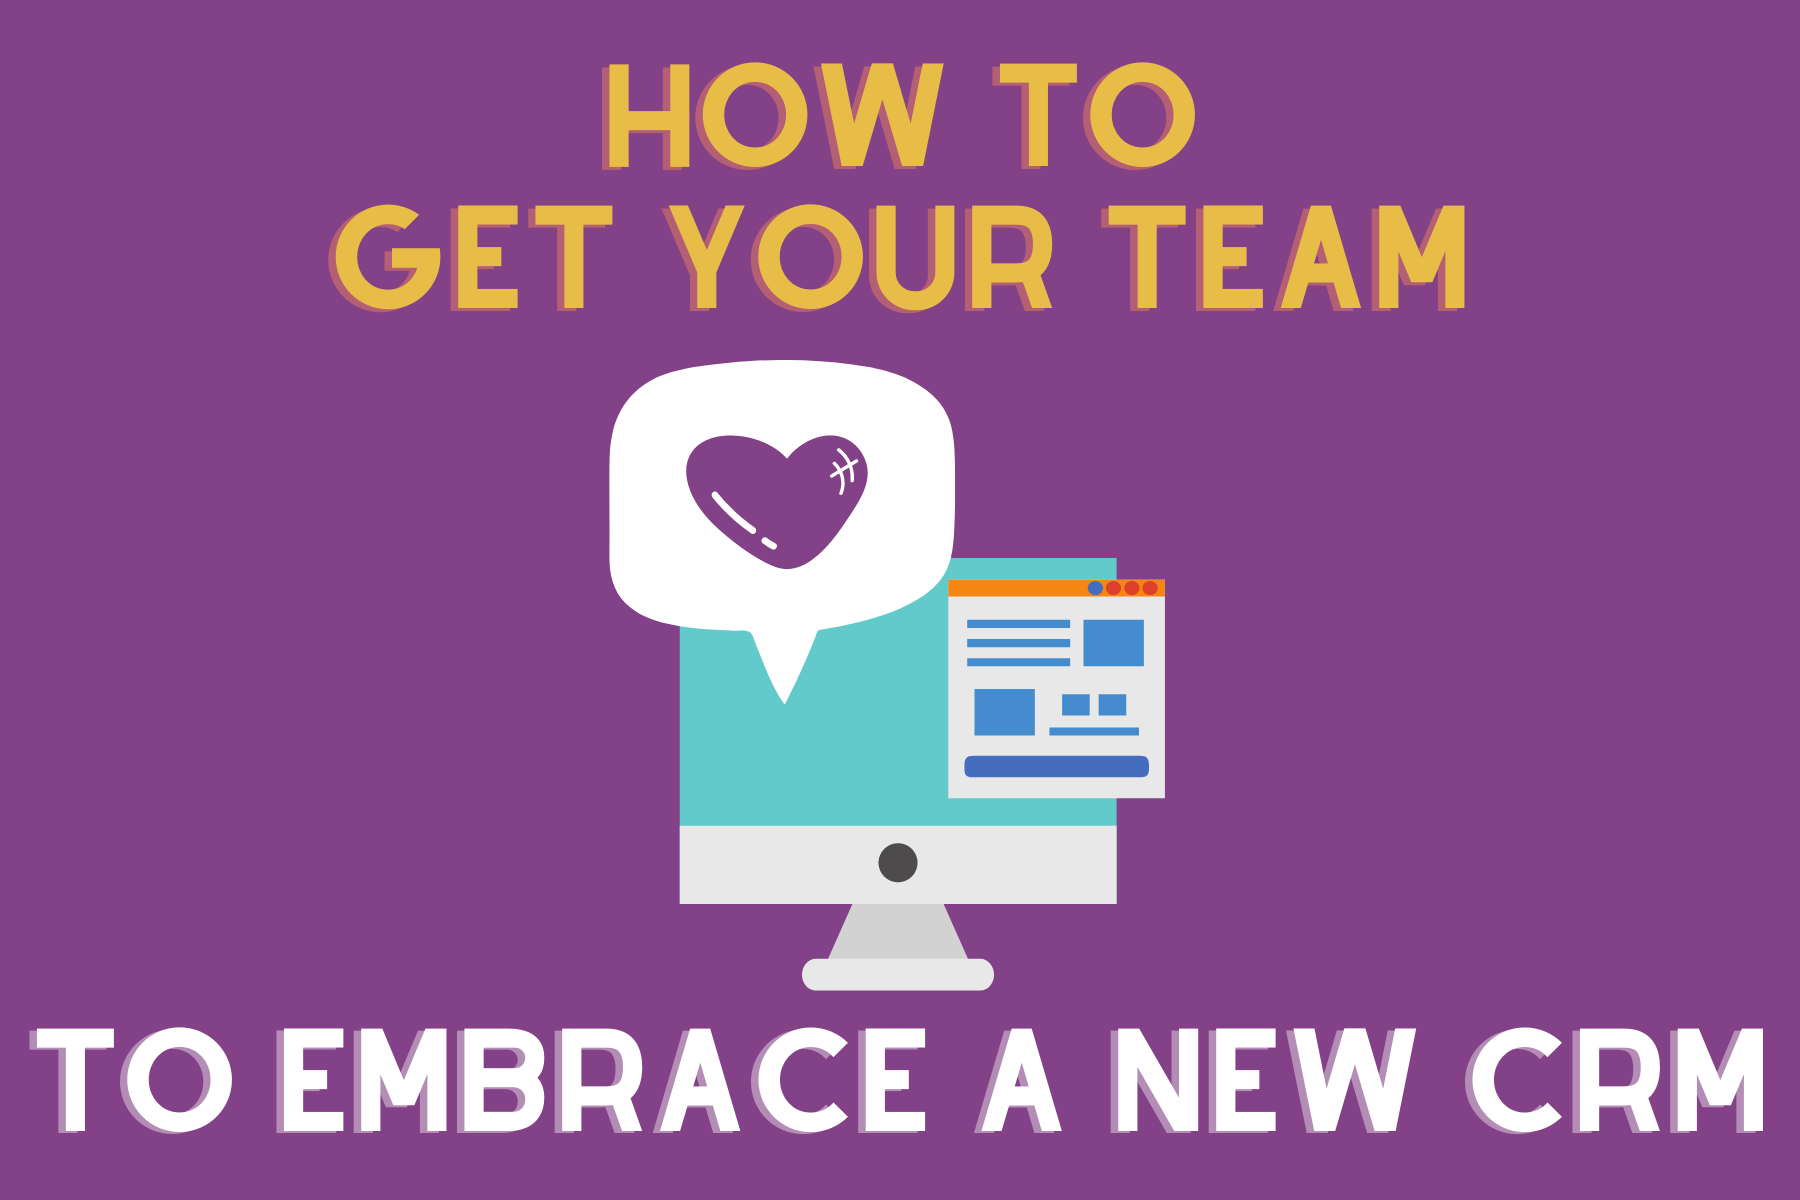 How to get your team to embrace a new CRM